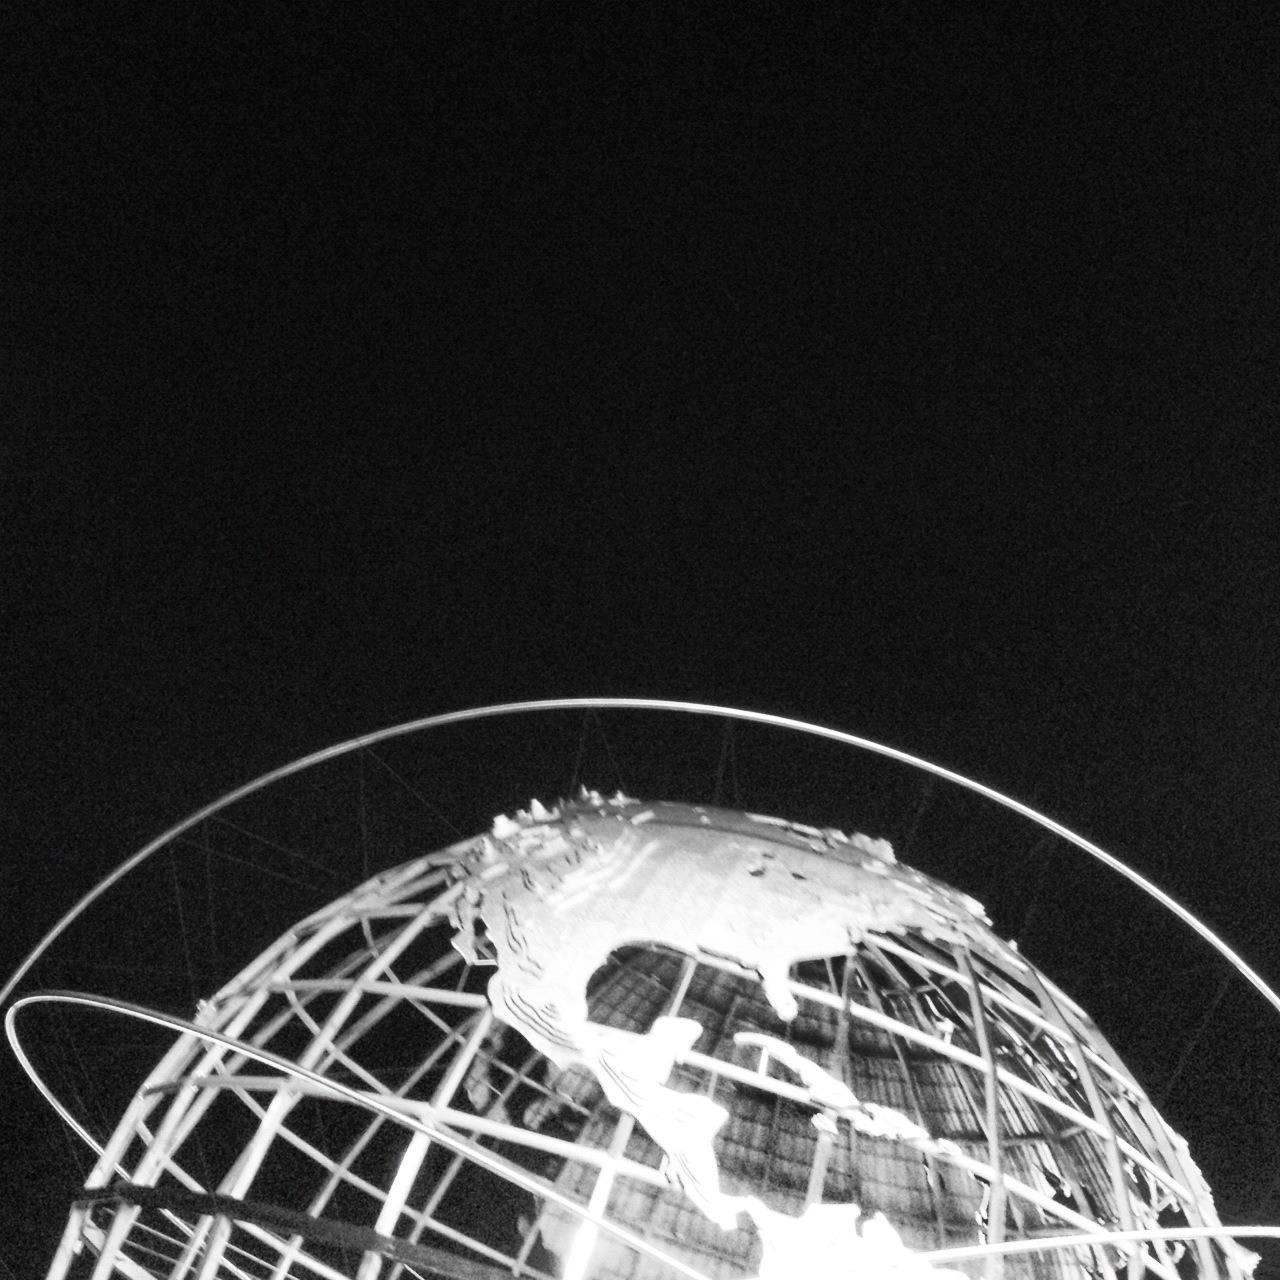 It's Yours / The Unisphere of Flushing Meadows-Corona Park / Queens, NY / 06.21.12 / 10:16PM